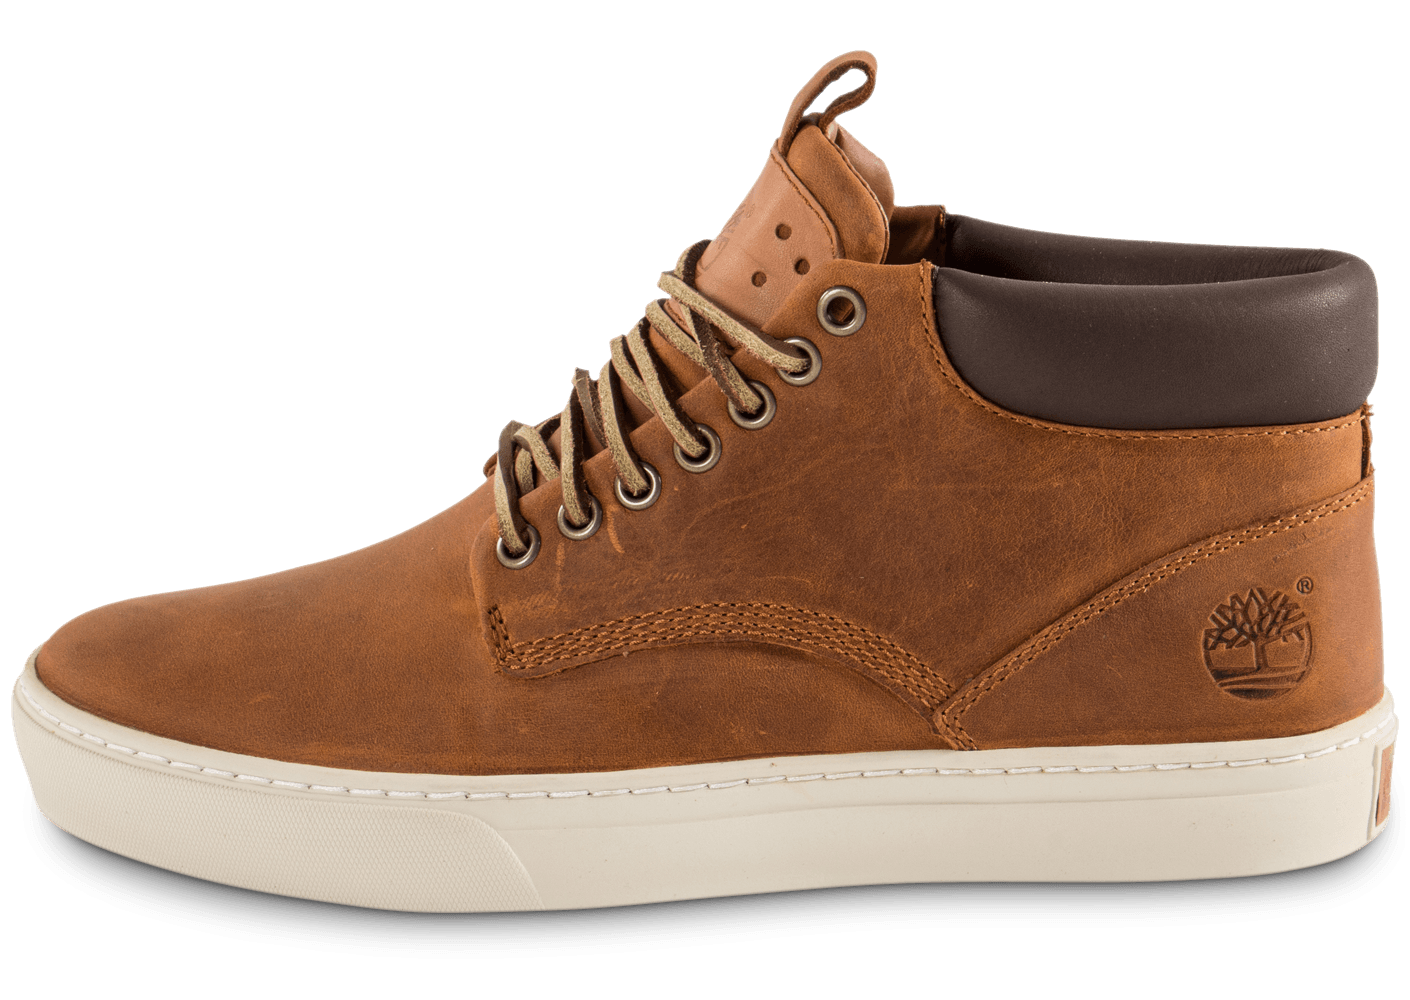 timberland 2 0 adventure cupsole chukka marron chaussures homme chausport. Black Bedroom Furniture Sets. Home Design Ideas